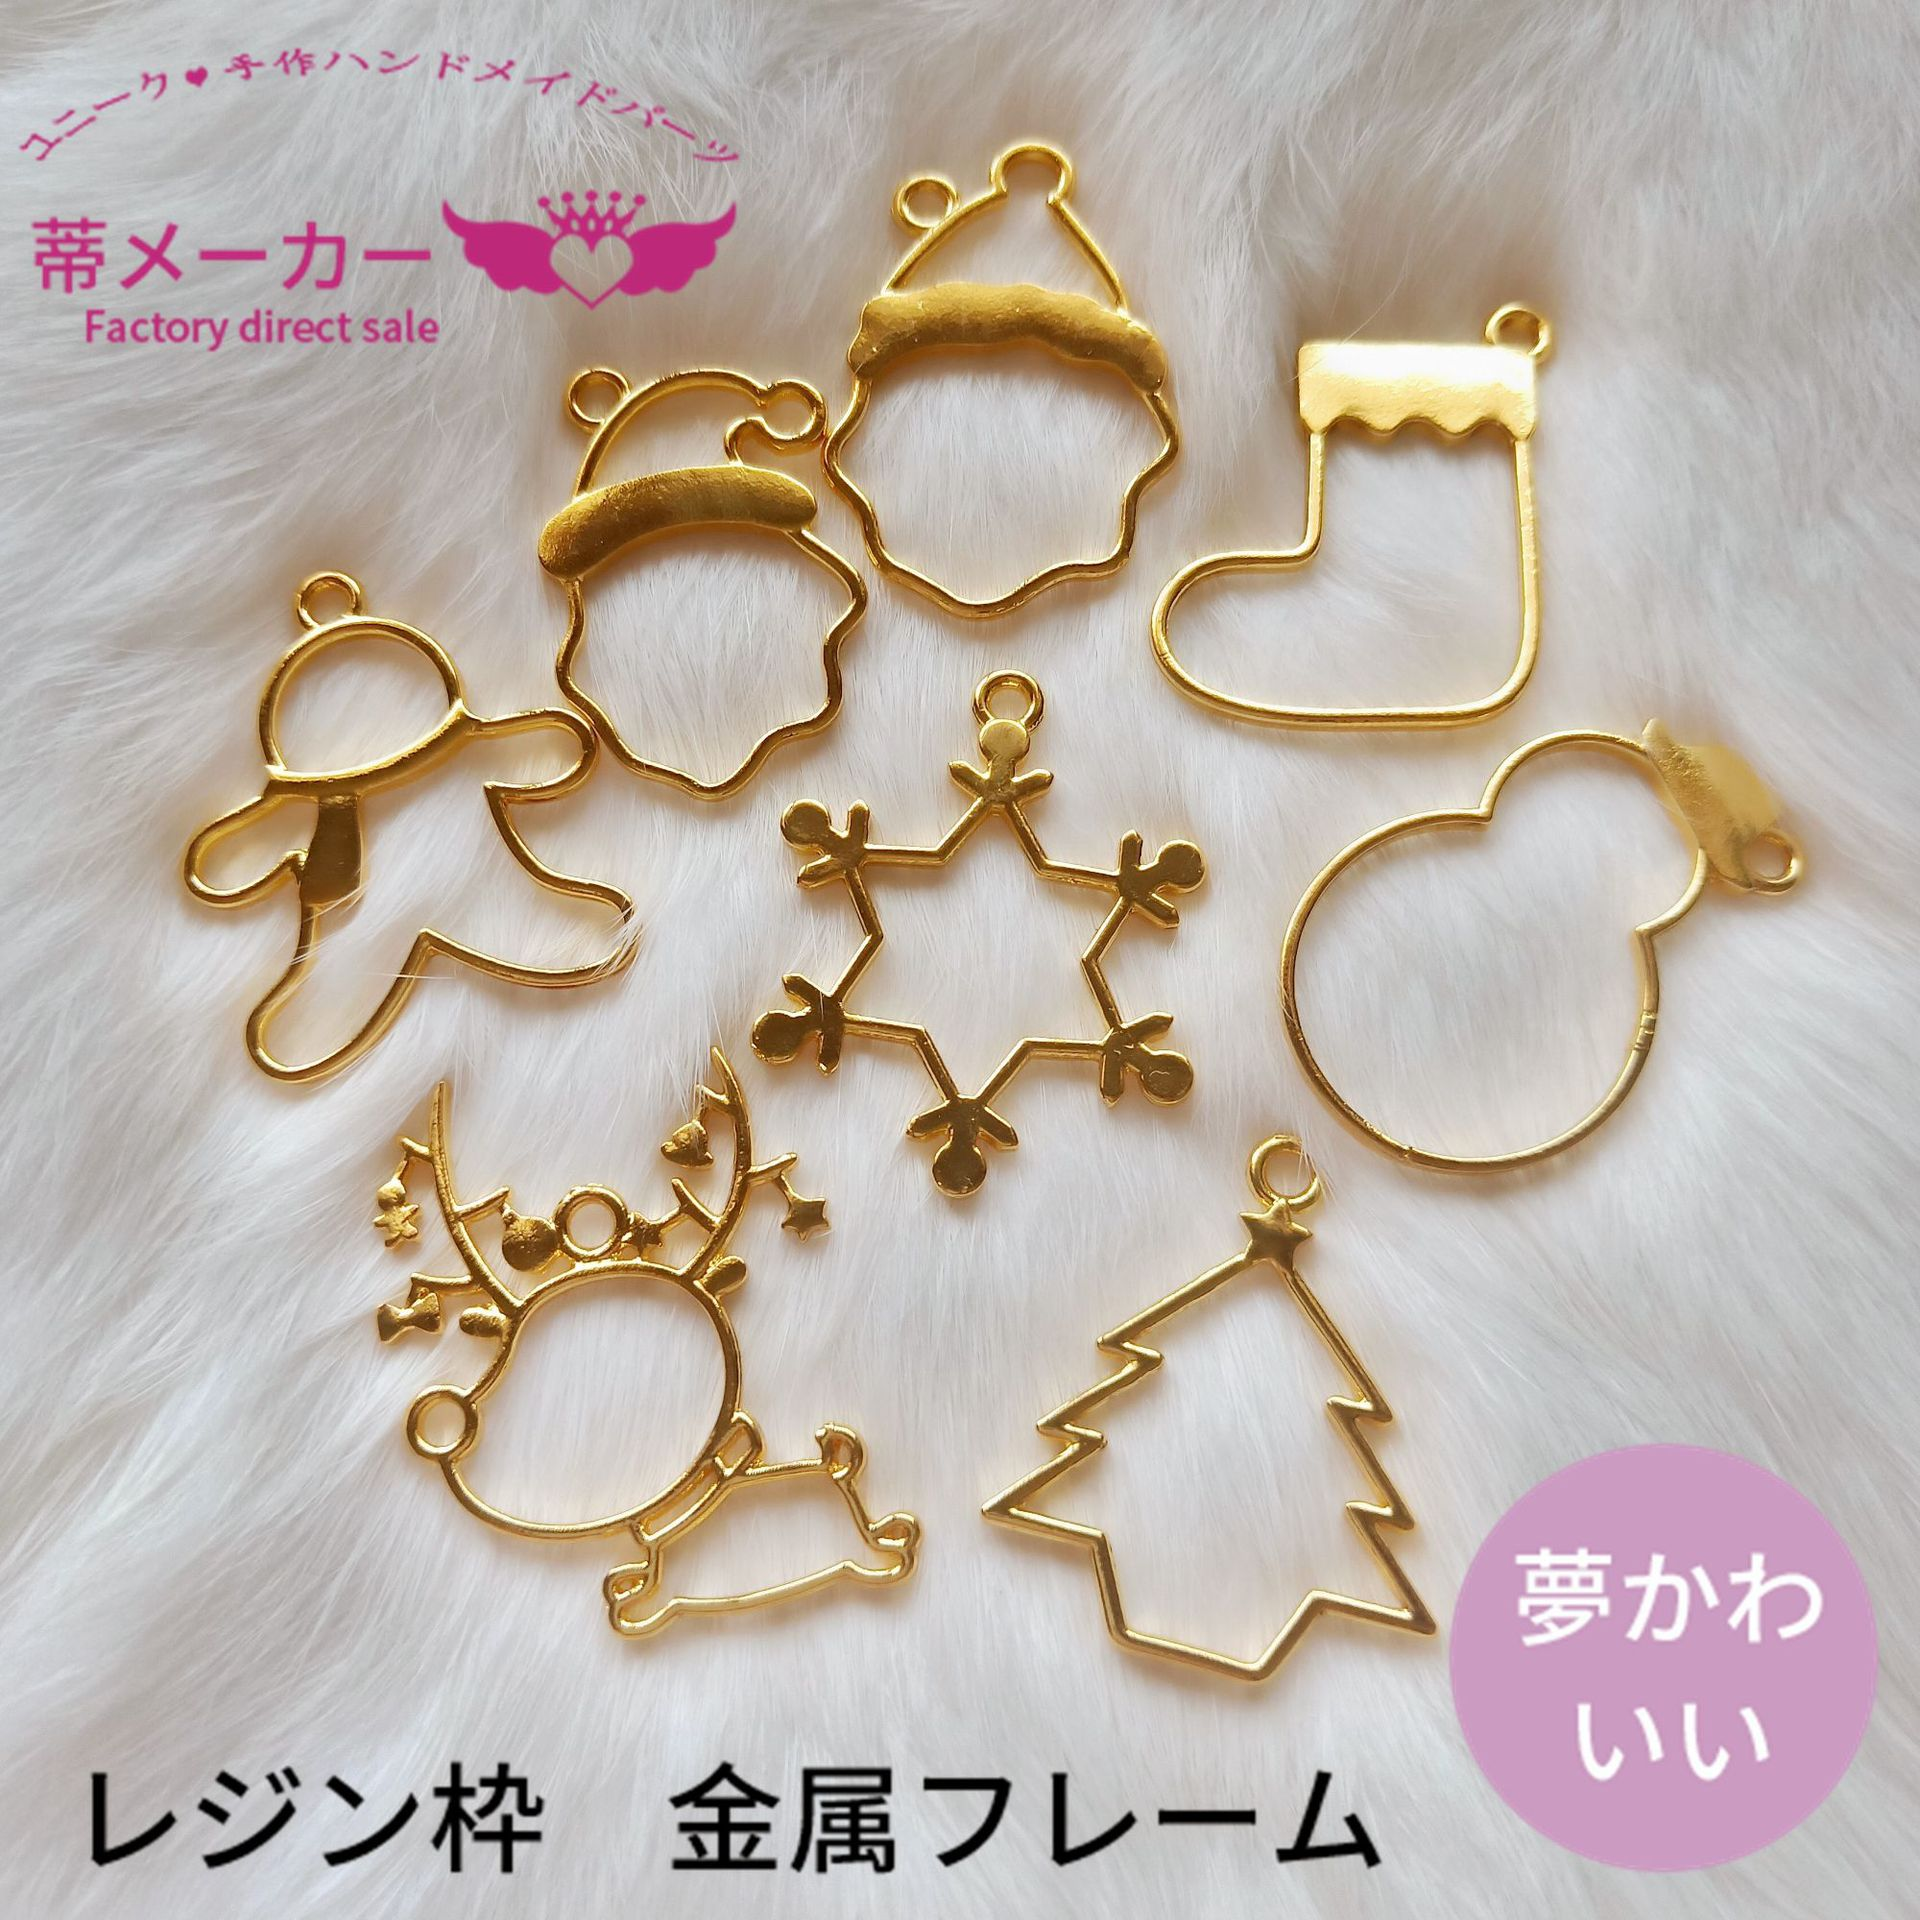 Mesmerizing Gold Metal Charms for DIY Christmas Decorations